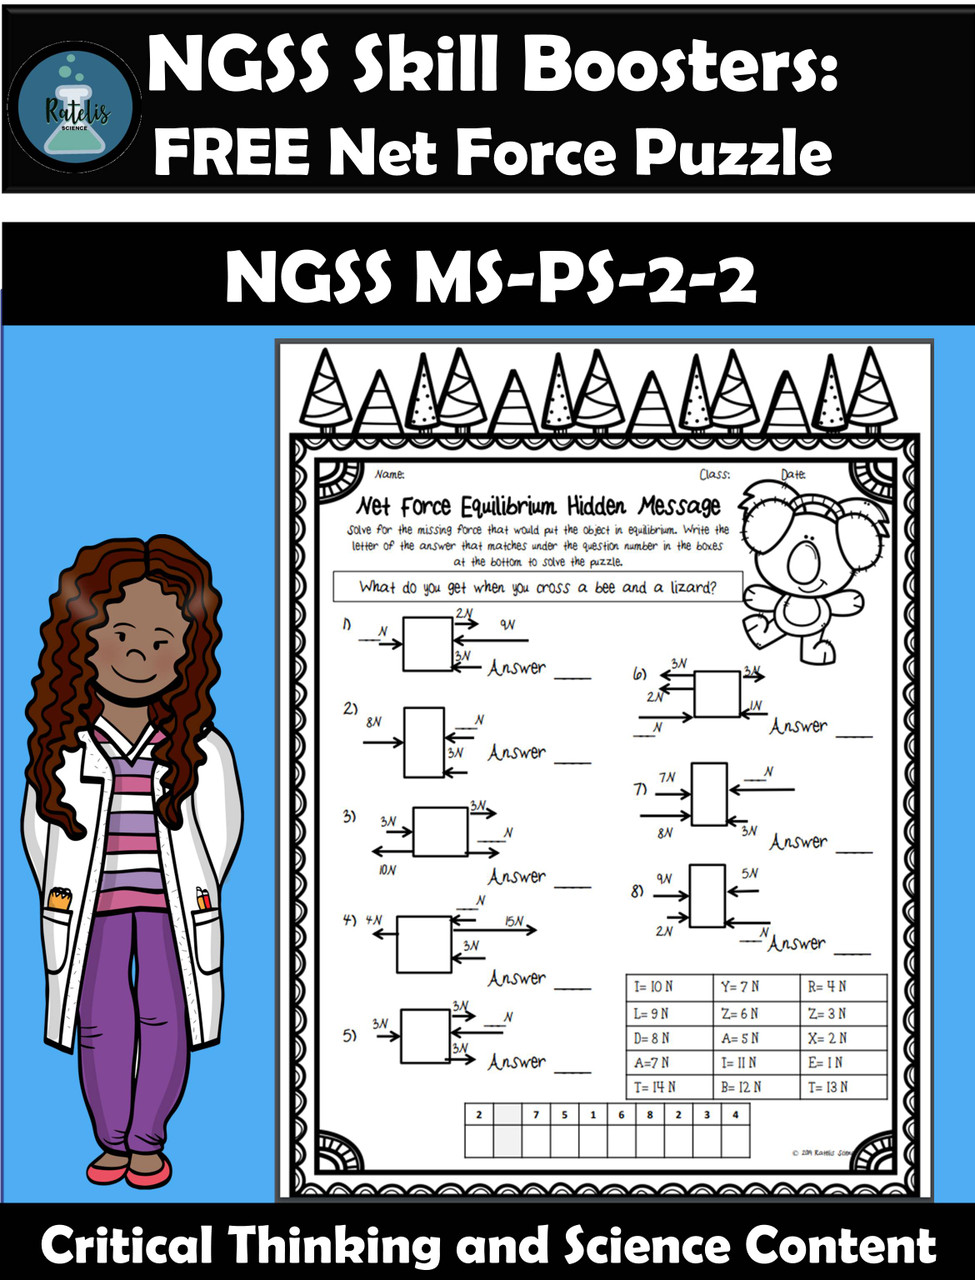 Net Force Puzzle (FREE SAMPLE) NGSS MS-PS-2-2